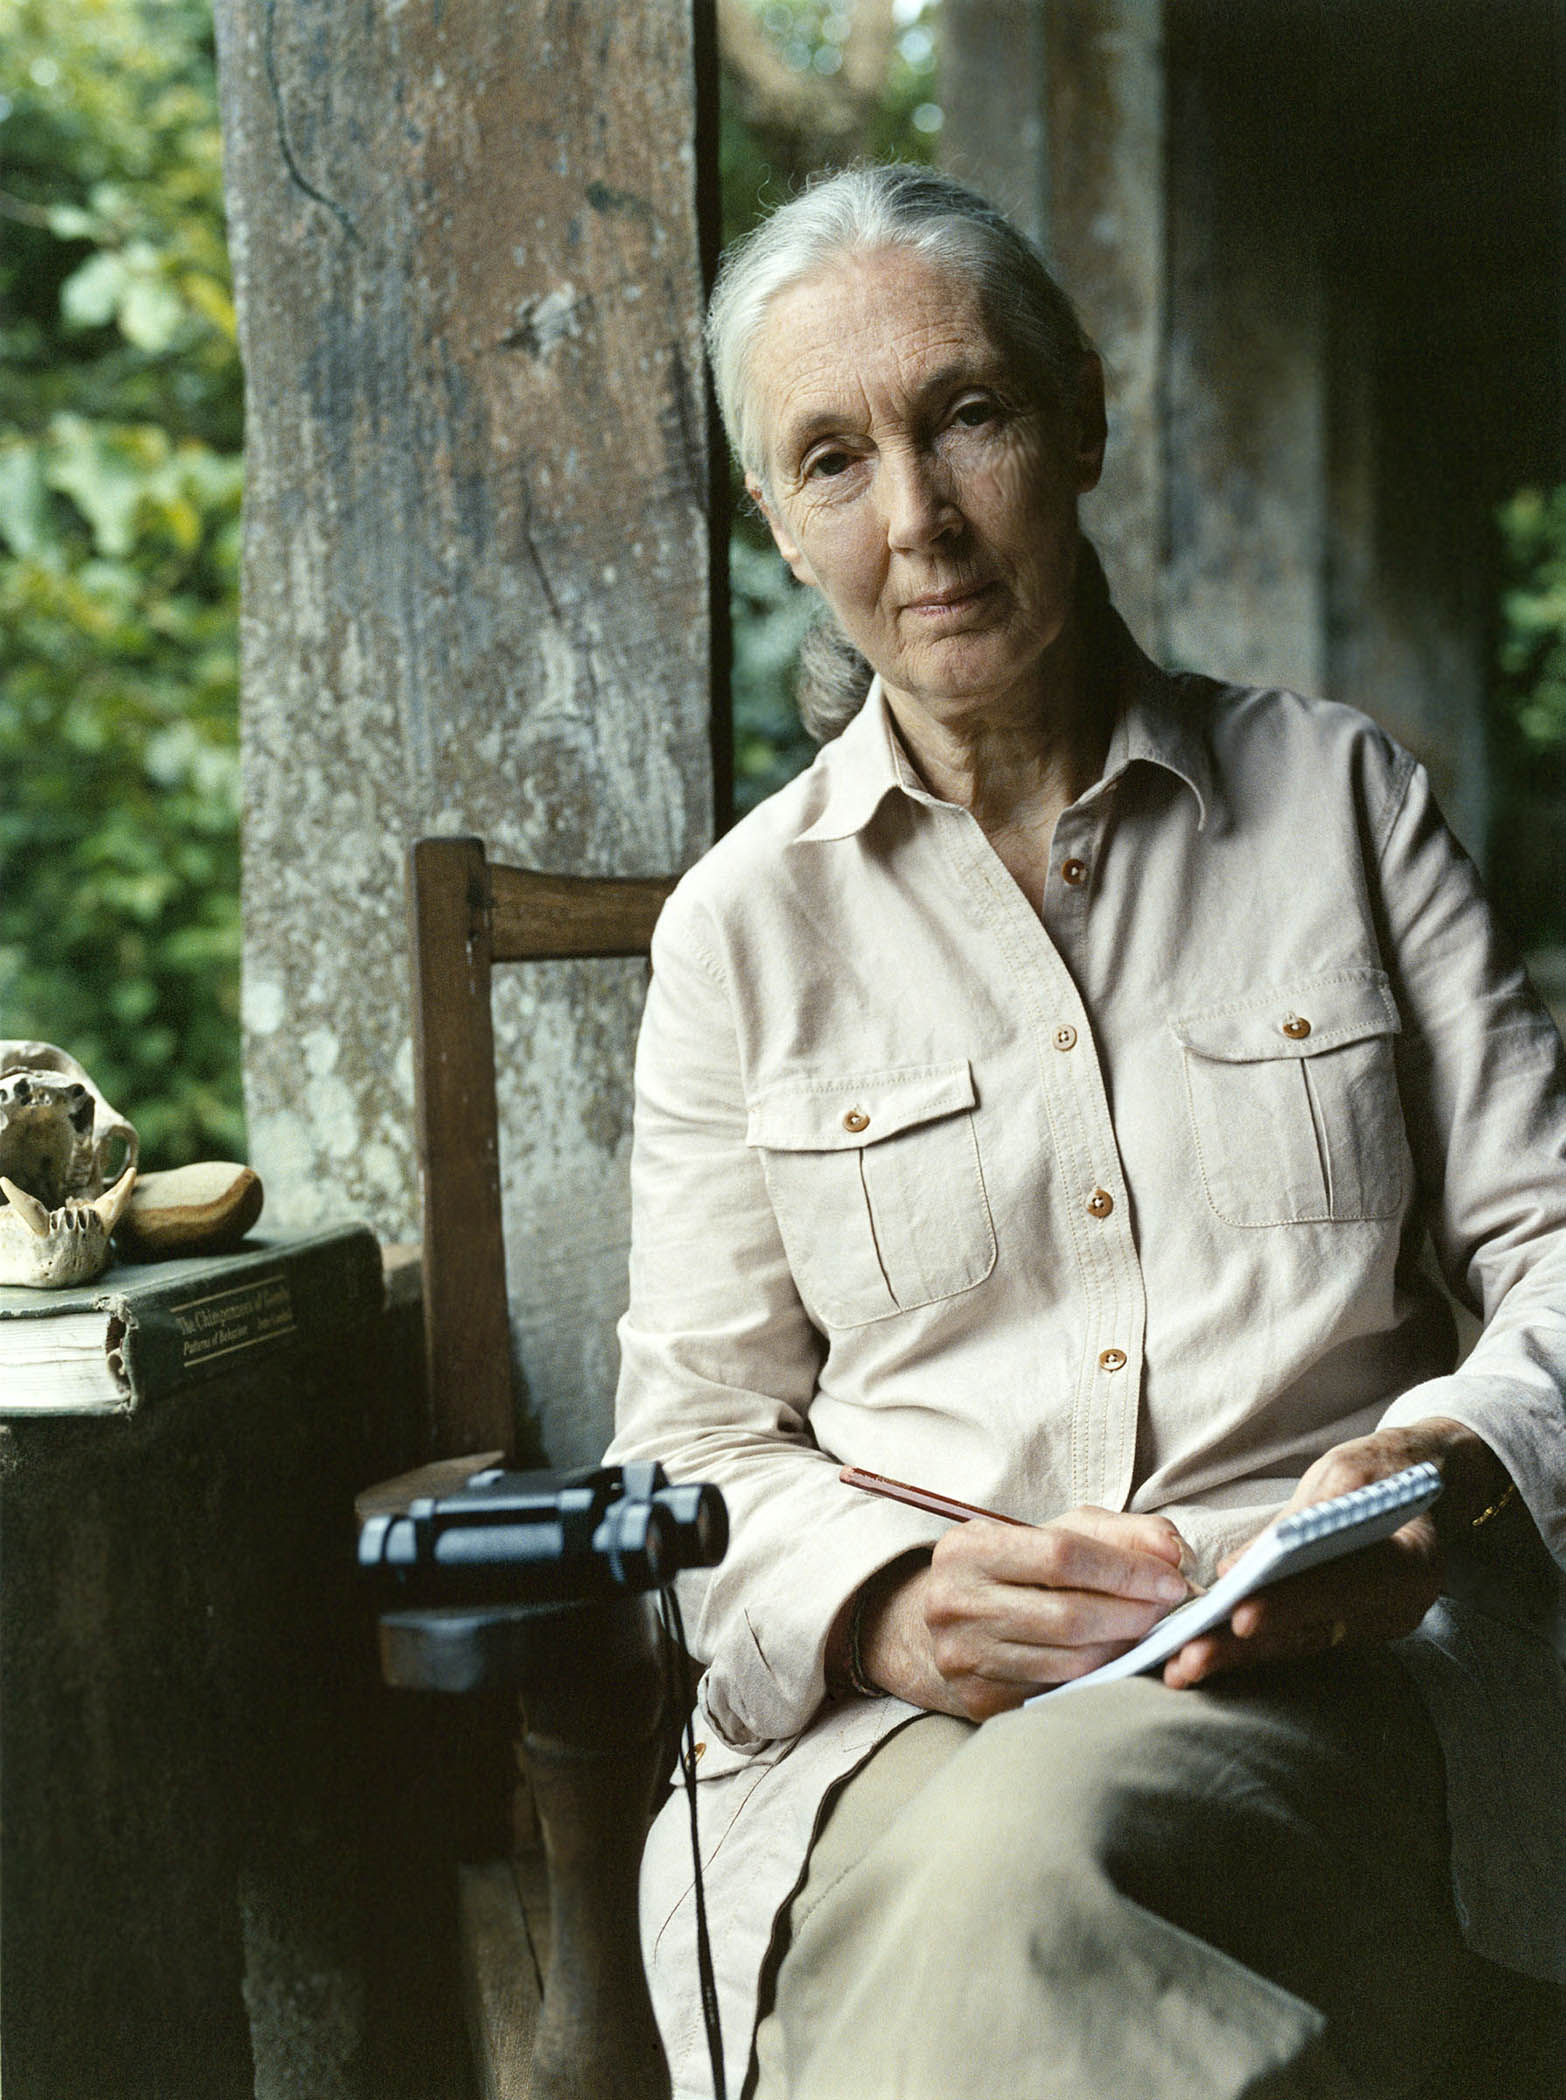 Dr. Jane Goodall in Gombe National Park, Tanzania GANT clothing campaign